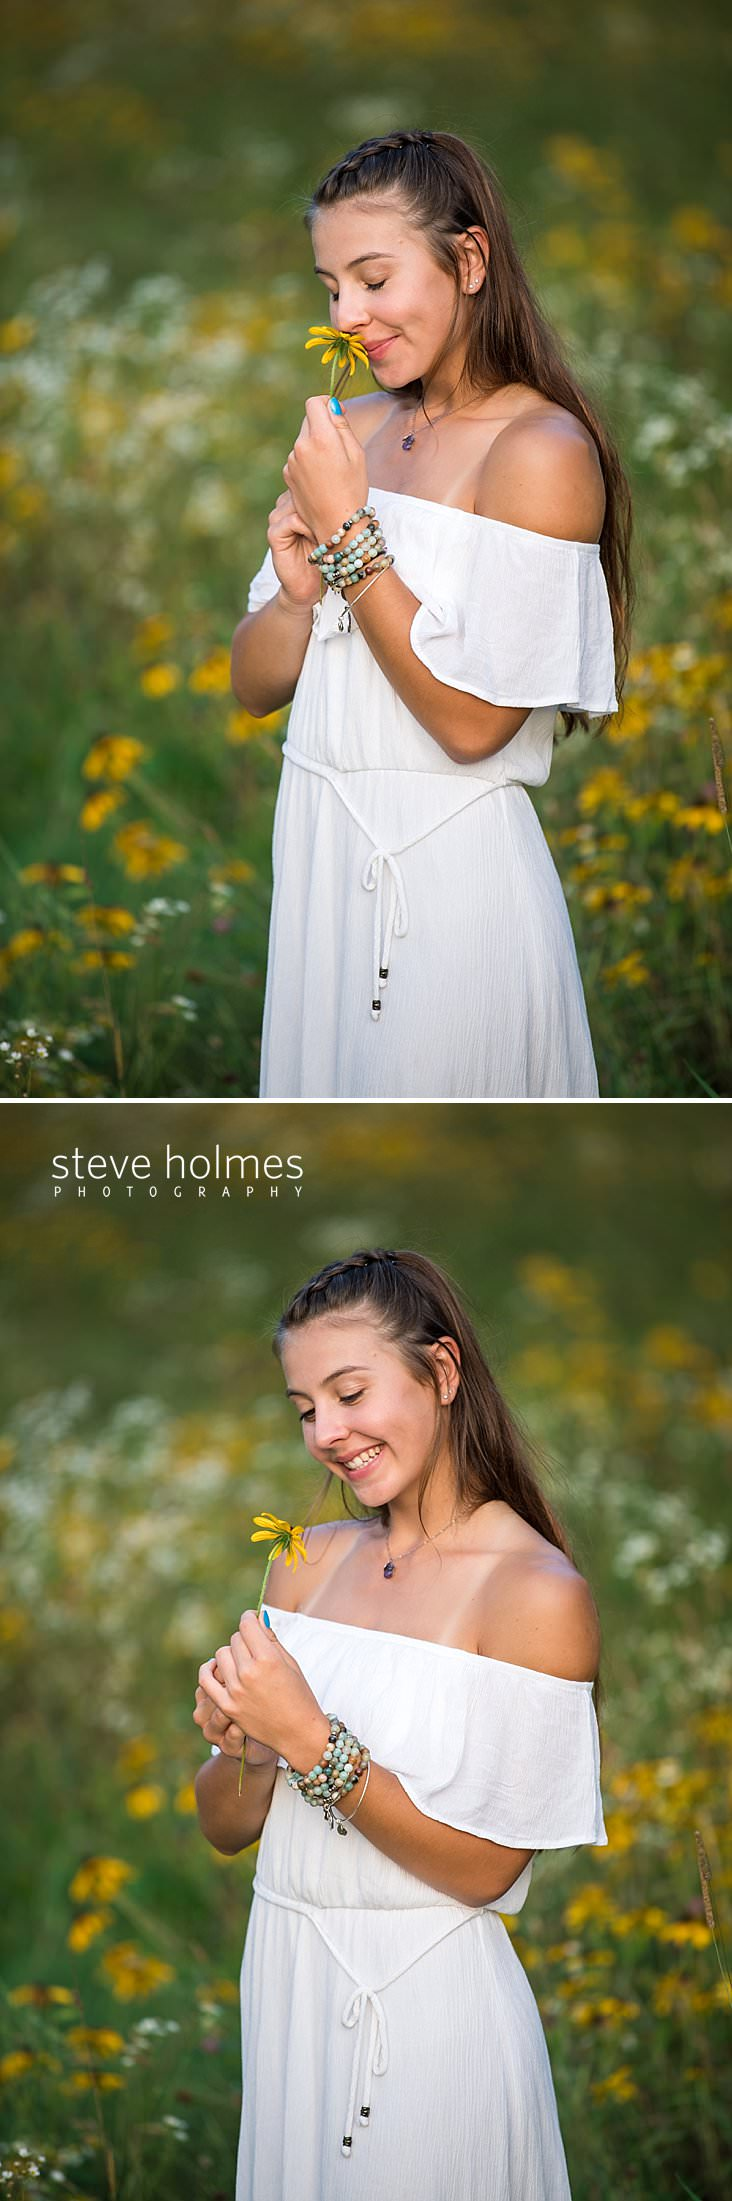 08_Young woman in white dress smells a flower with her eyes closed for senior portrait.jpg